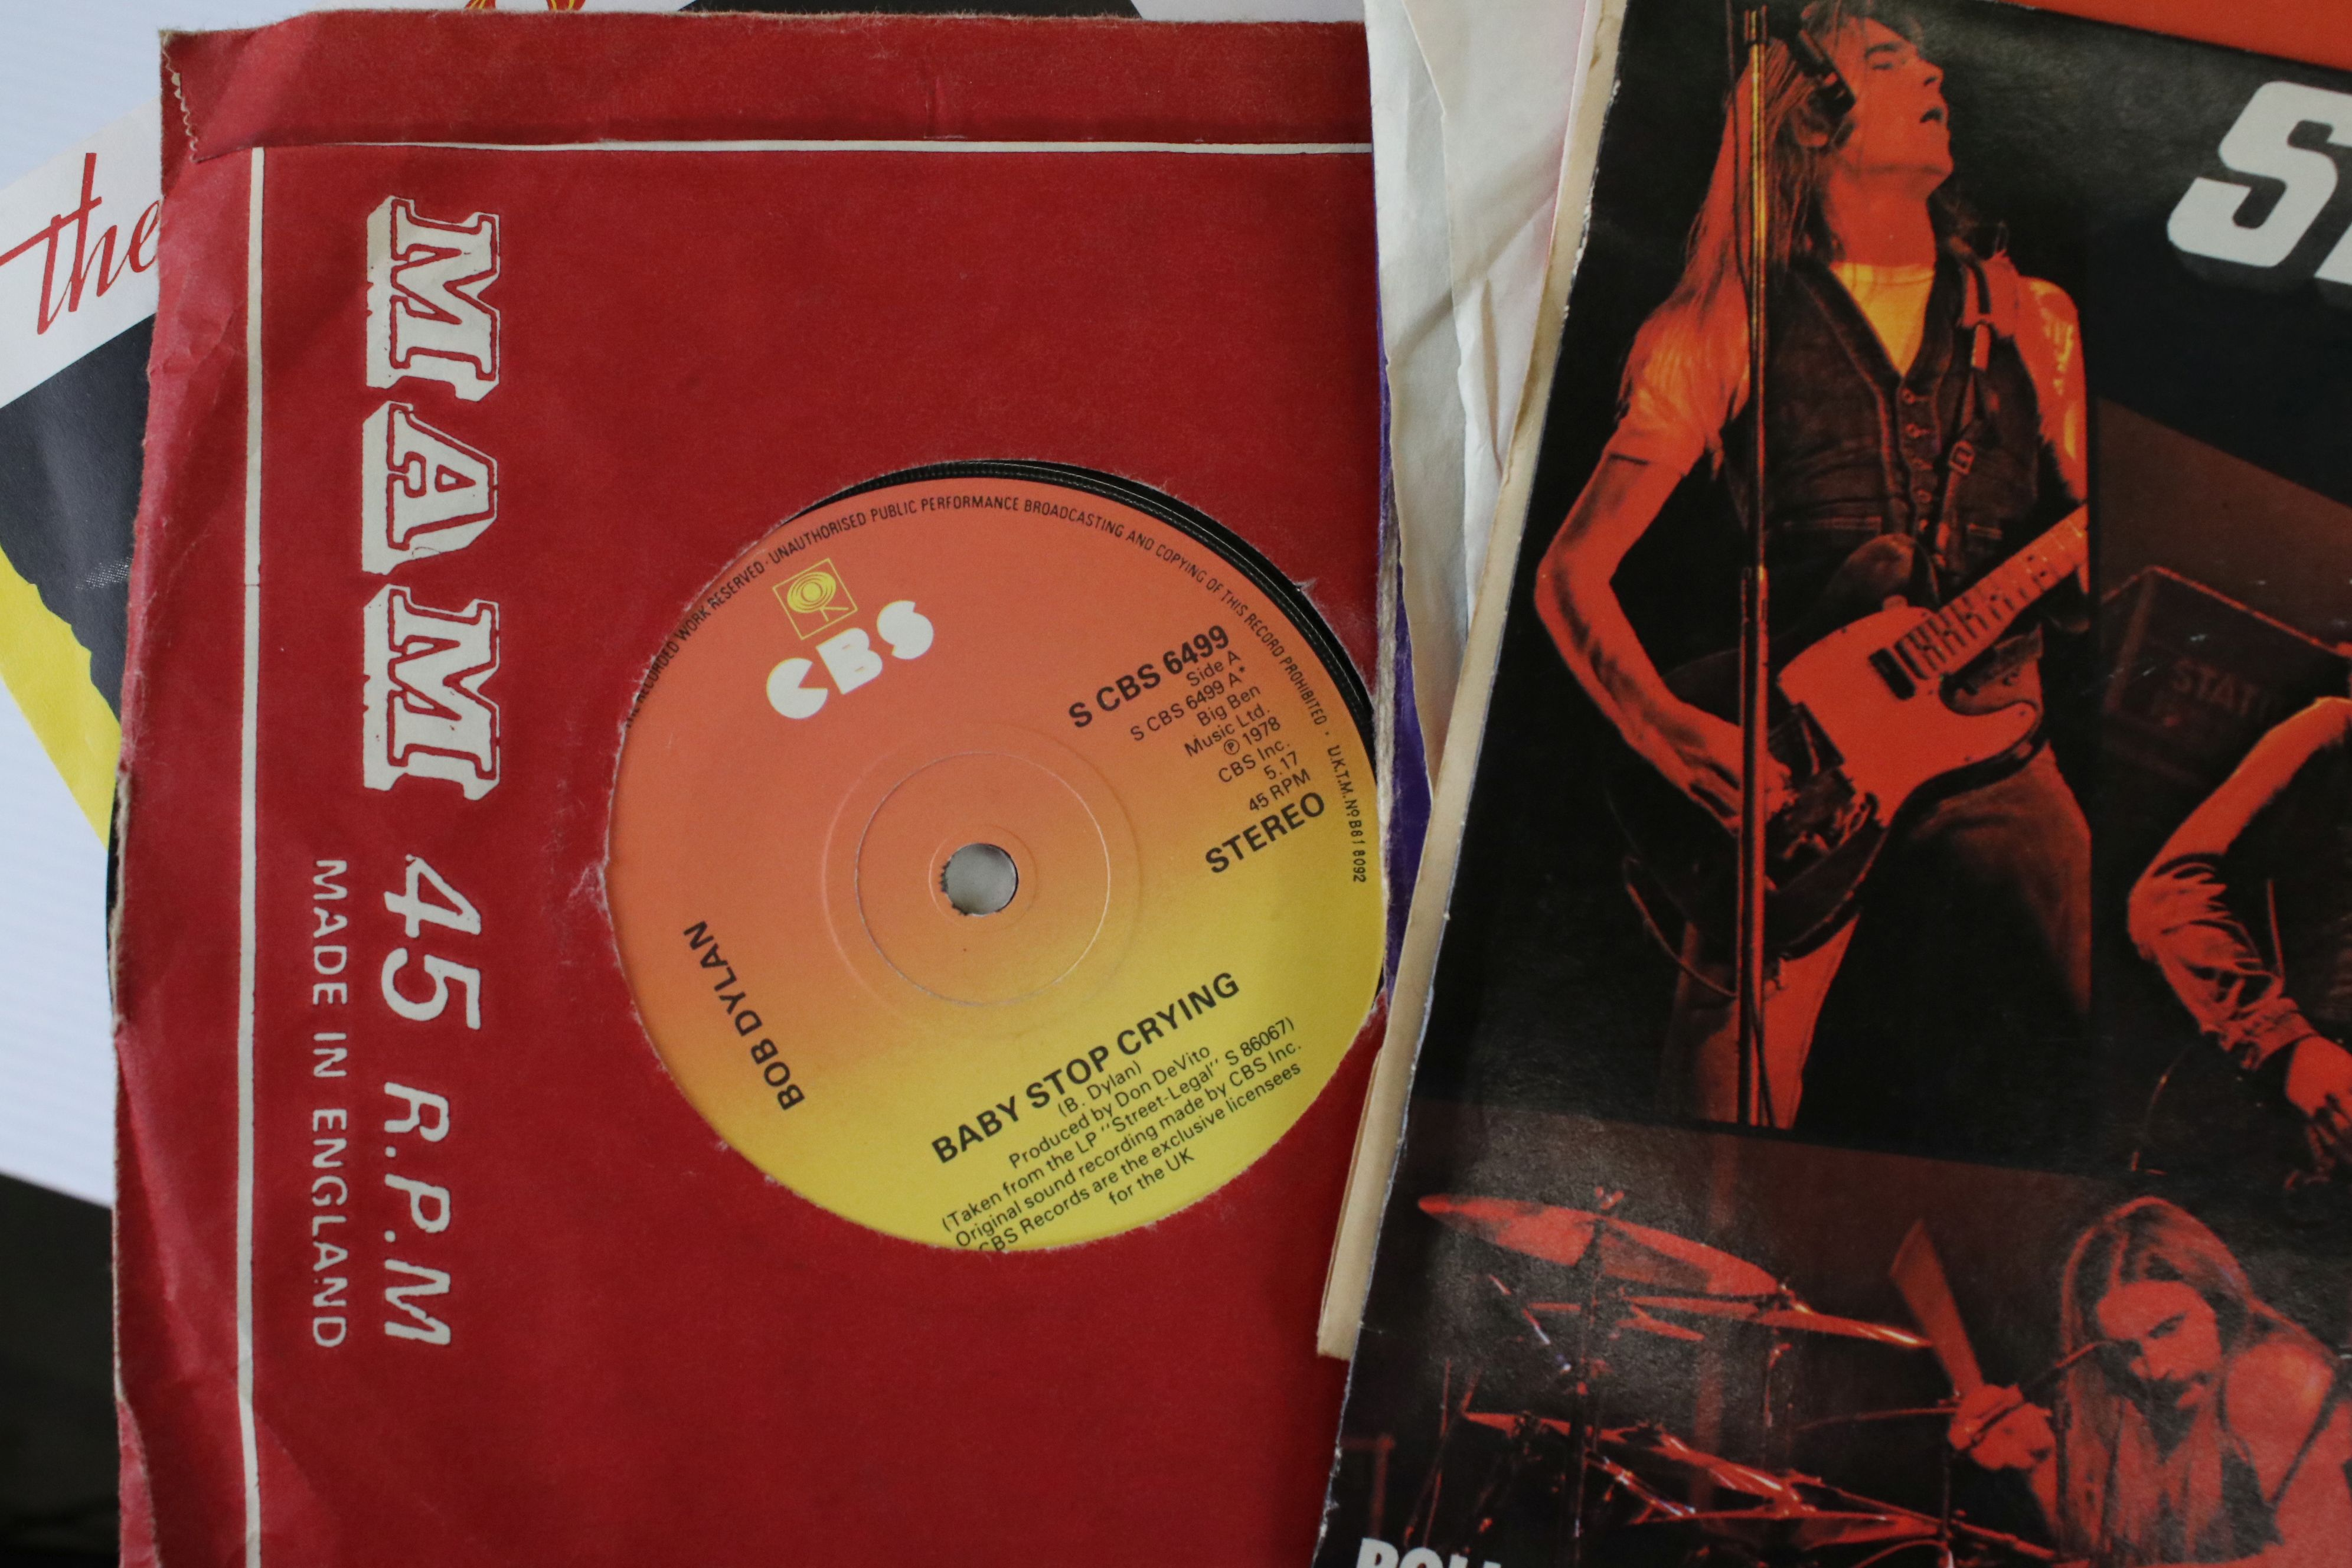 """Vinyl - Pop collection of approx 40 LP's and 100 7"""" singles to include Dire Straits, Paul Young, Cat - Image 6 of 6"""